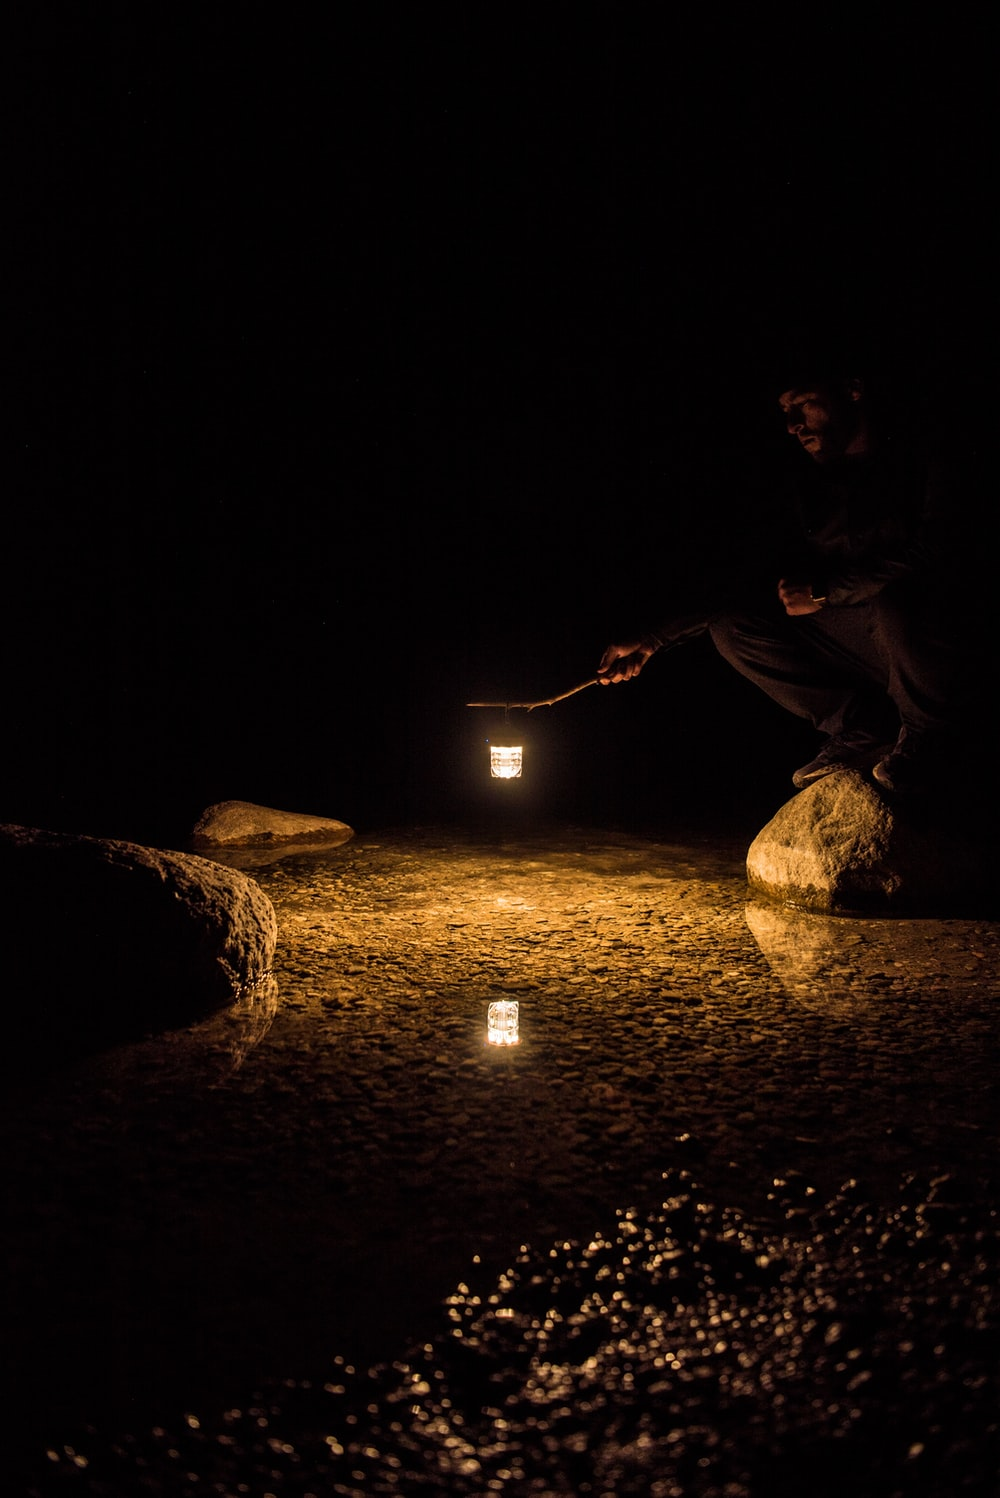 man in black shirt sitting on rock during night time